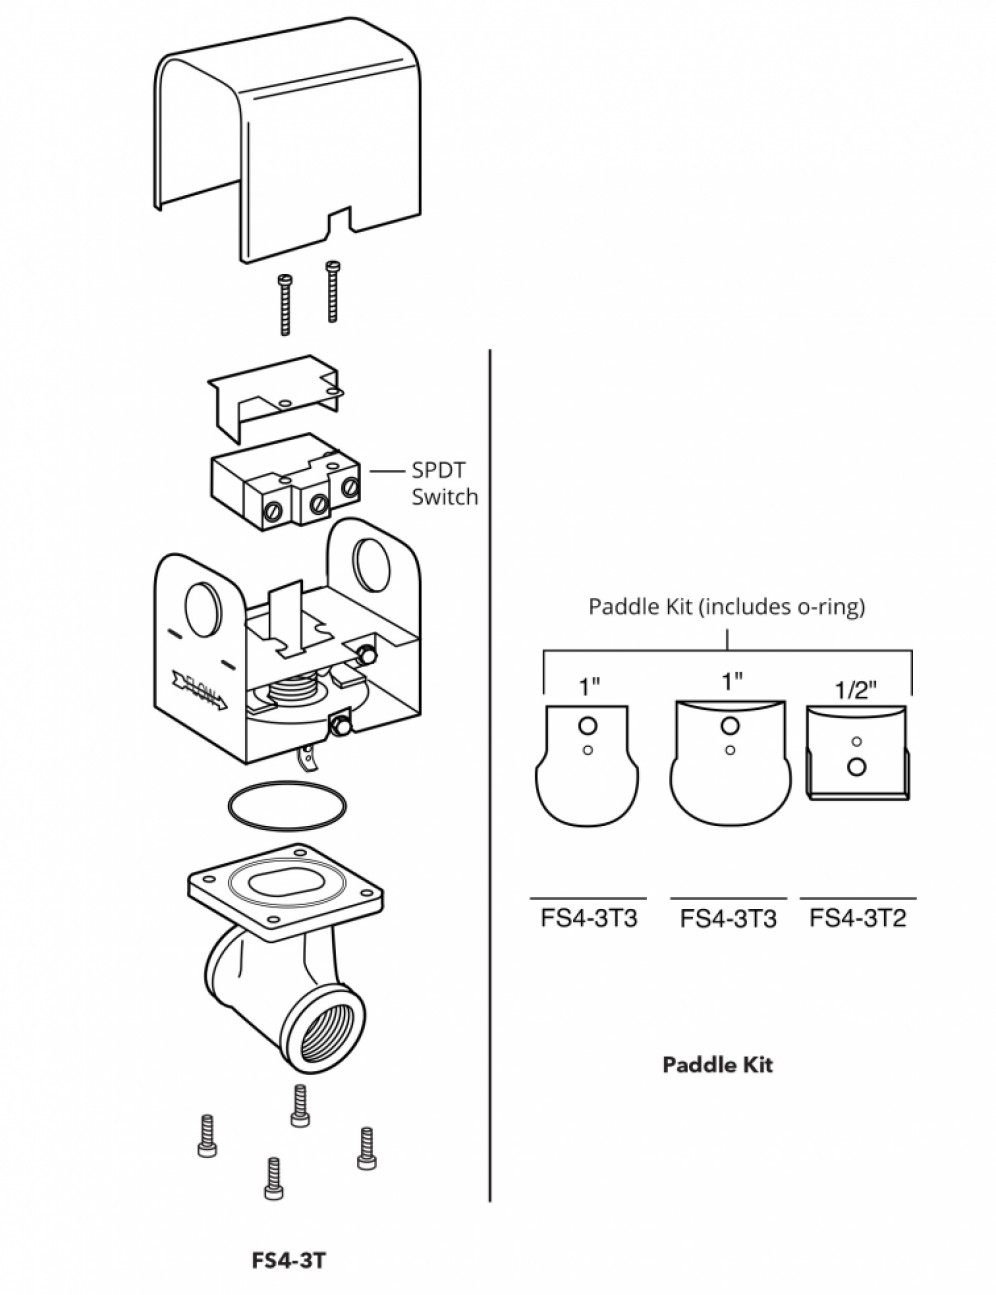 McDonnell and Miller Series FS4 Flow Switches for Heating